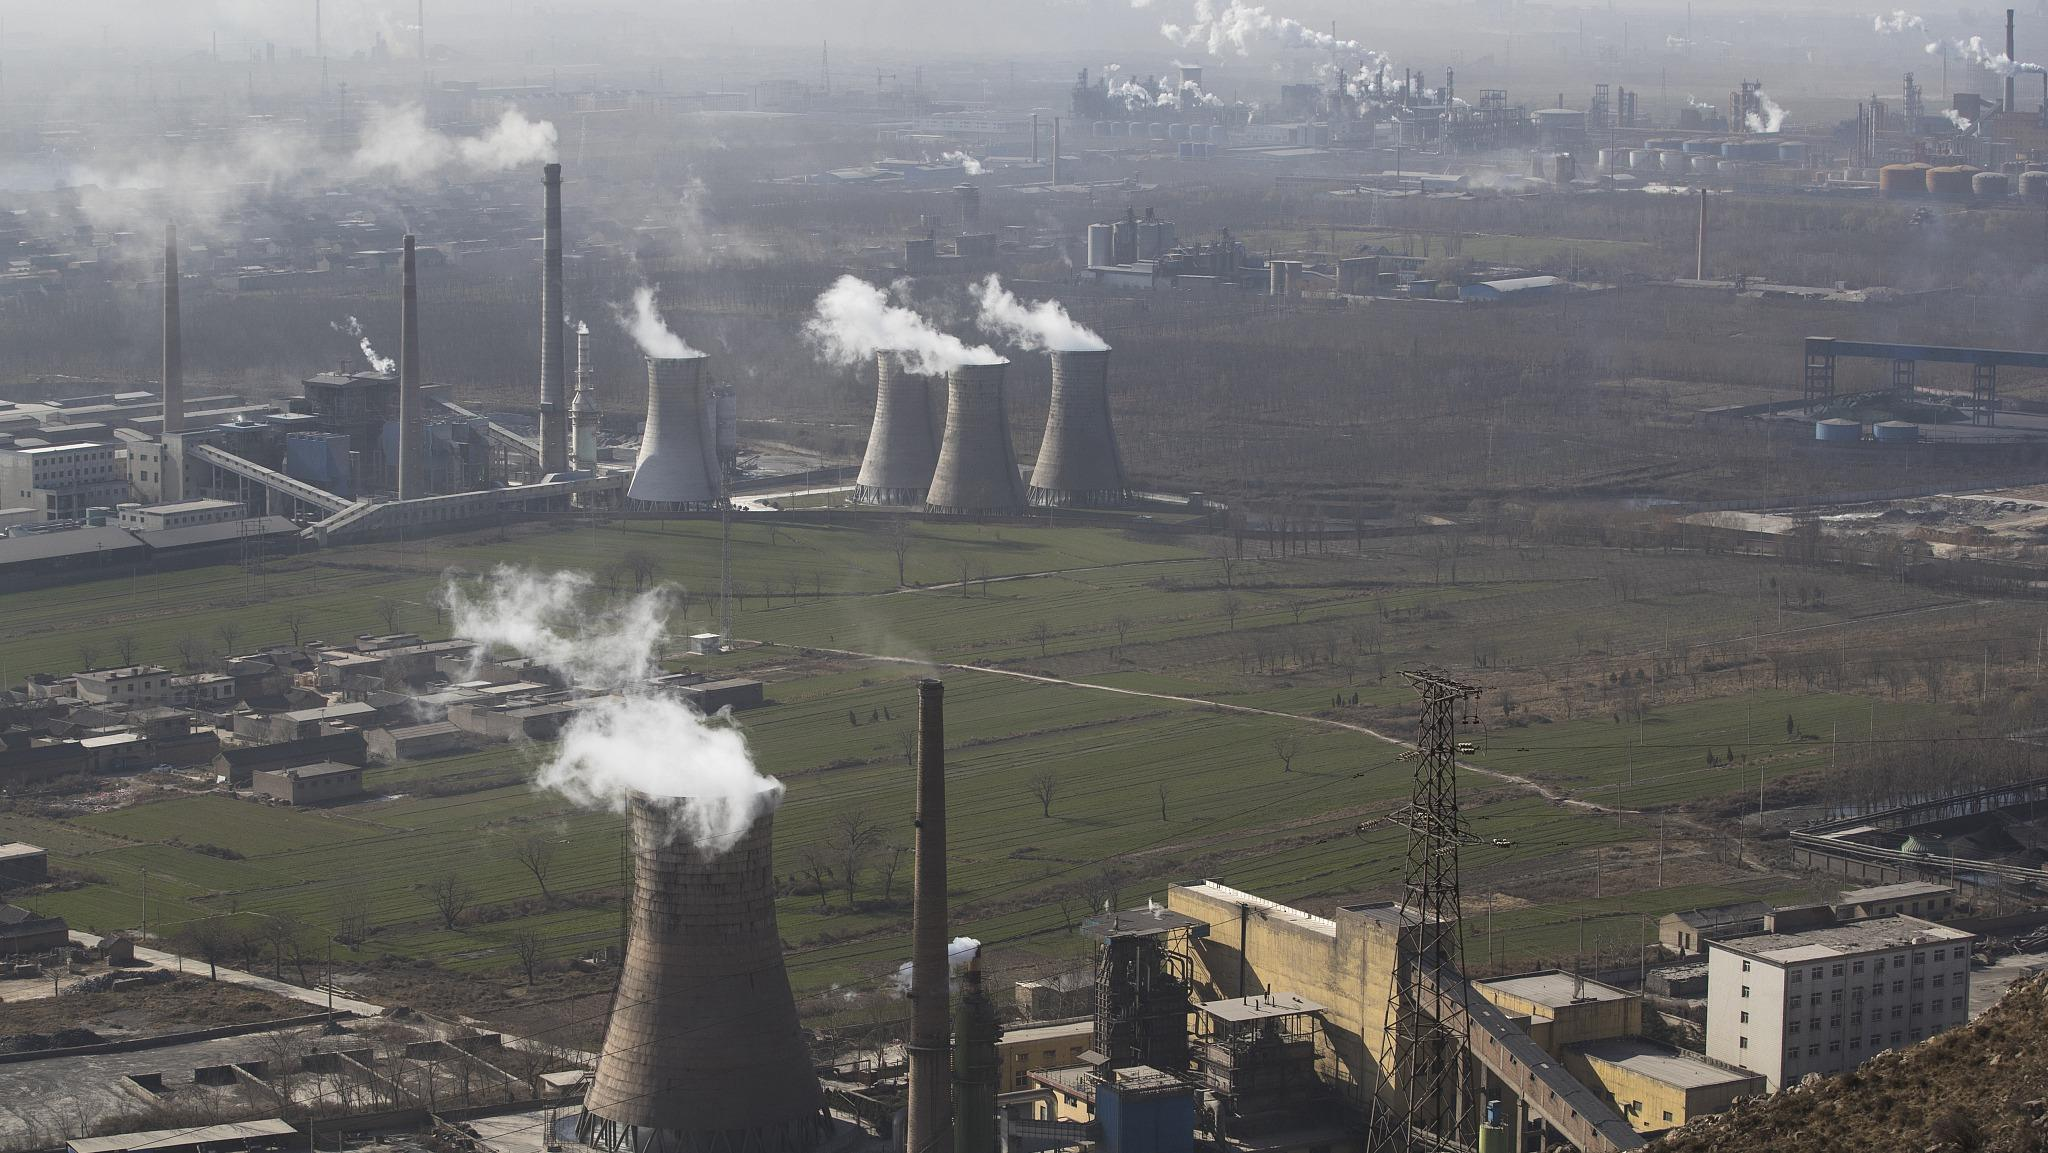 China's crackdown on air pollution working, but unevenly